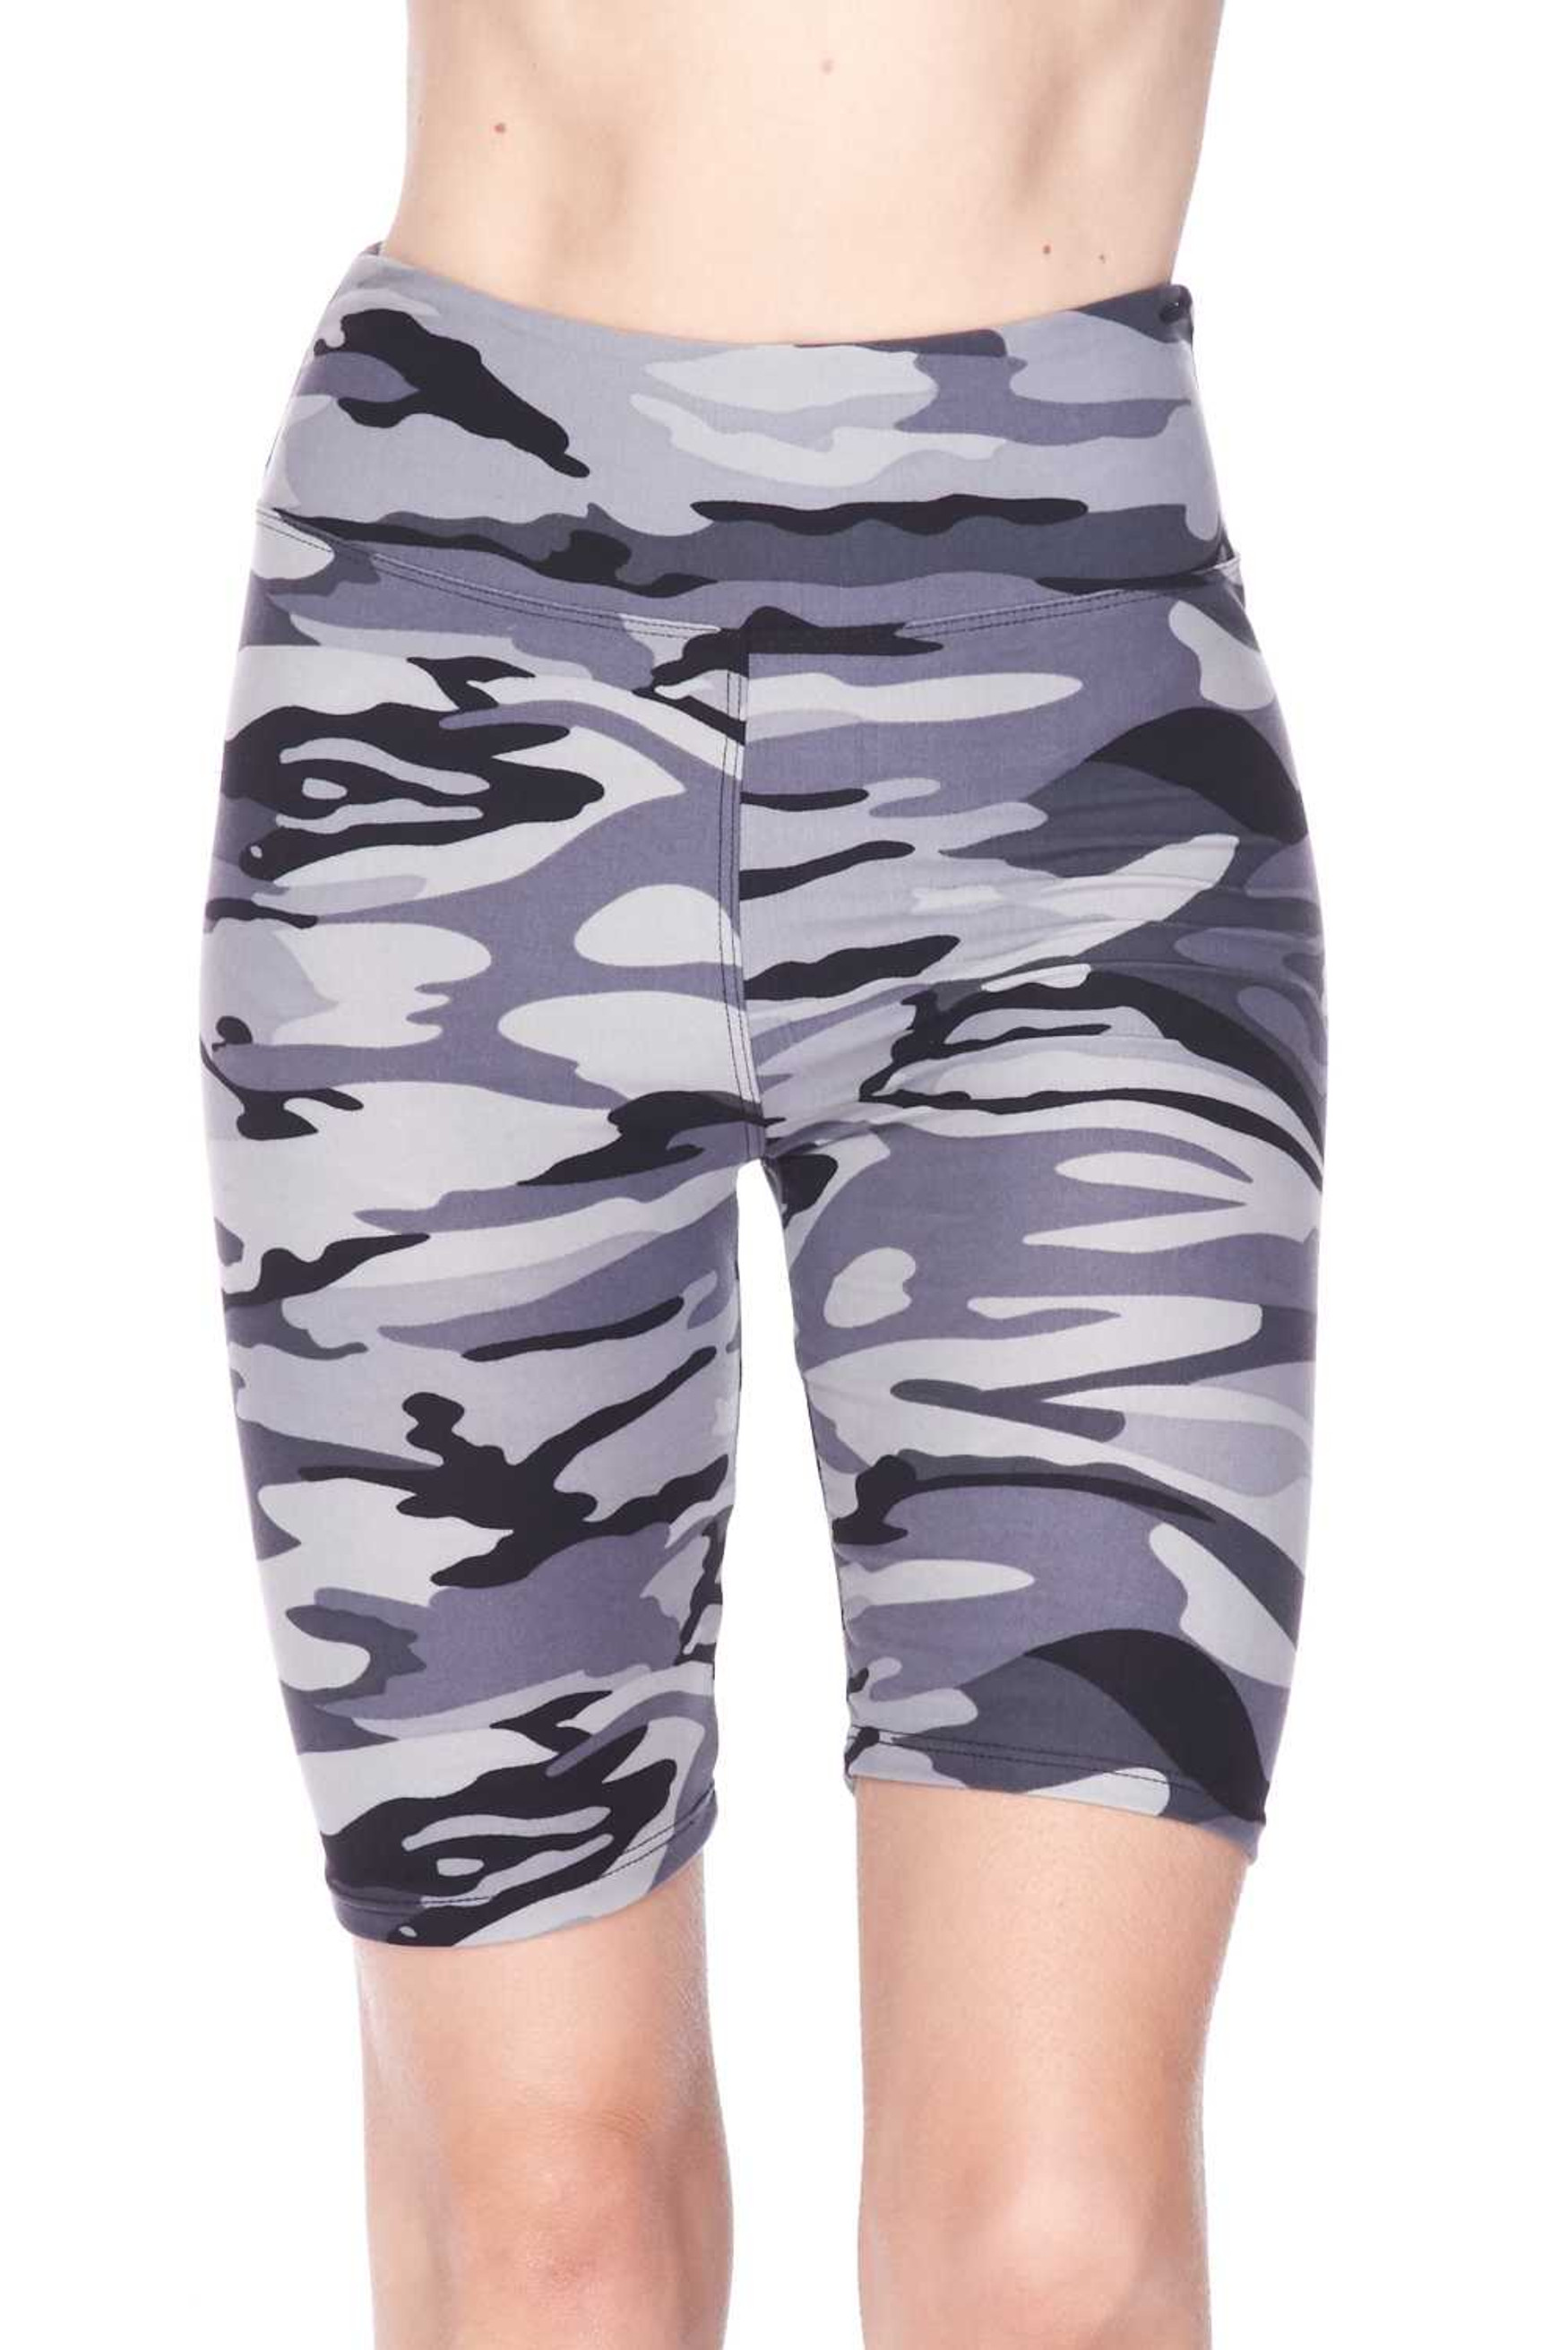 Buttery Soft Charcoal Camouflage Plus Size Biker Shorts - 3 Inch Waist Band